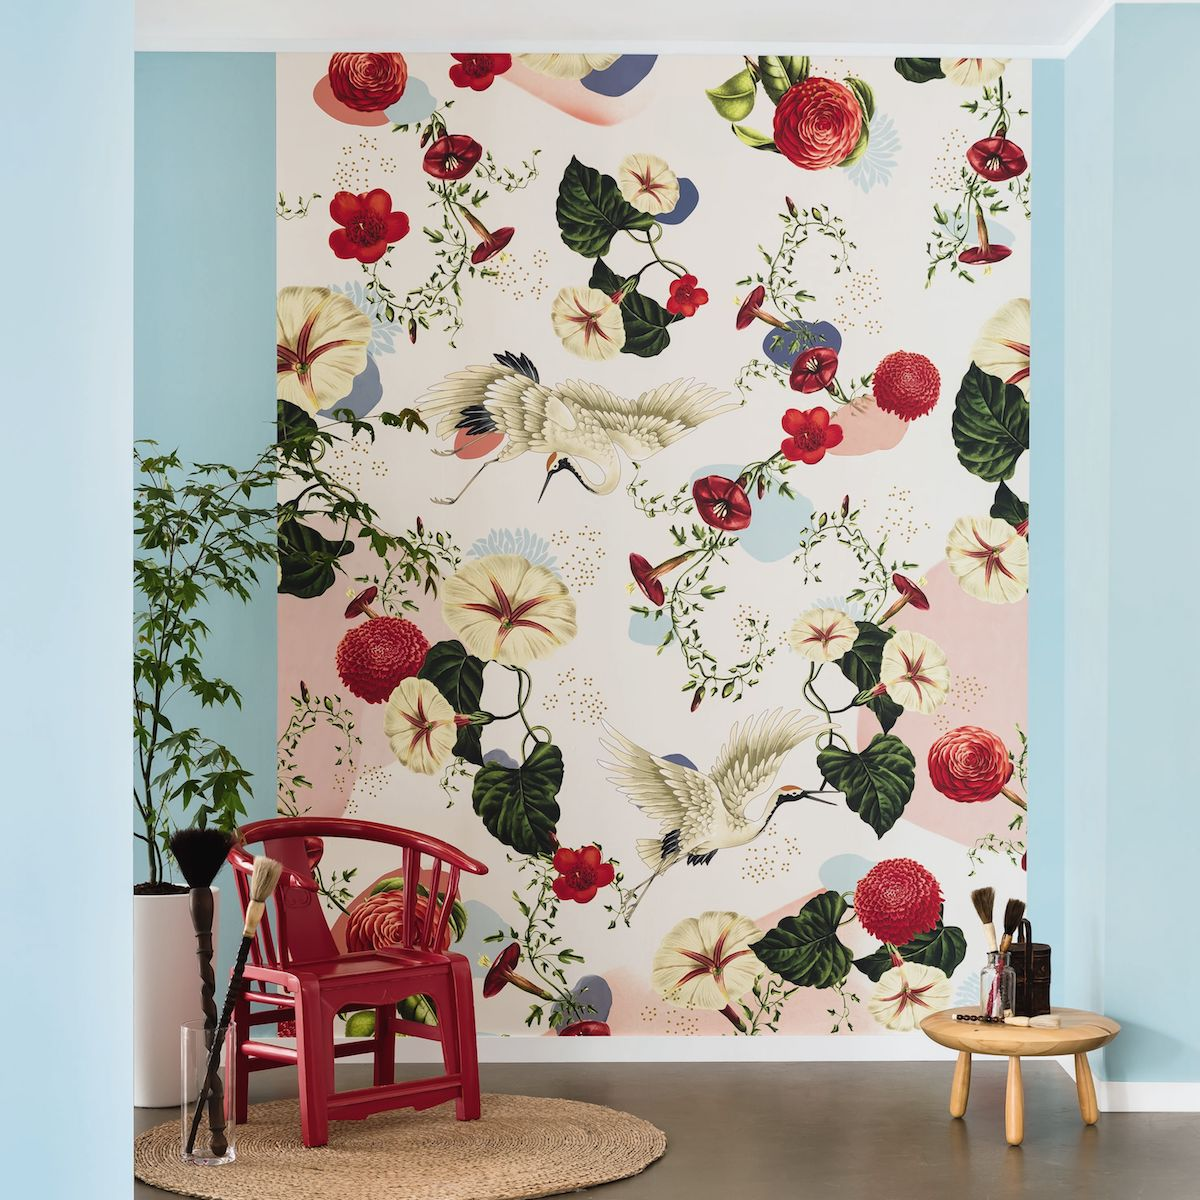 Tropical Birds Are The New Decorating Trend Coming To A Wall